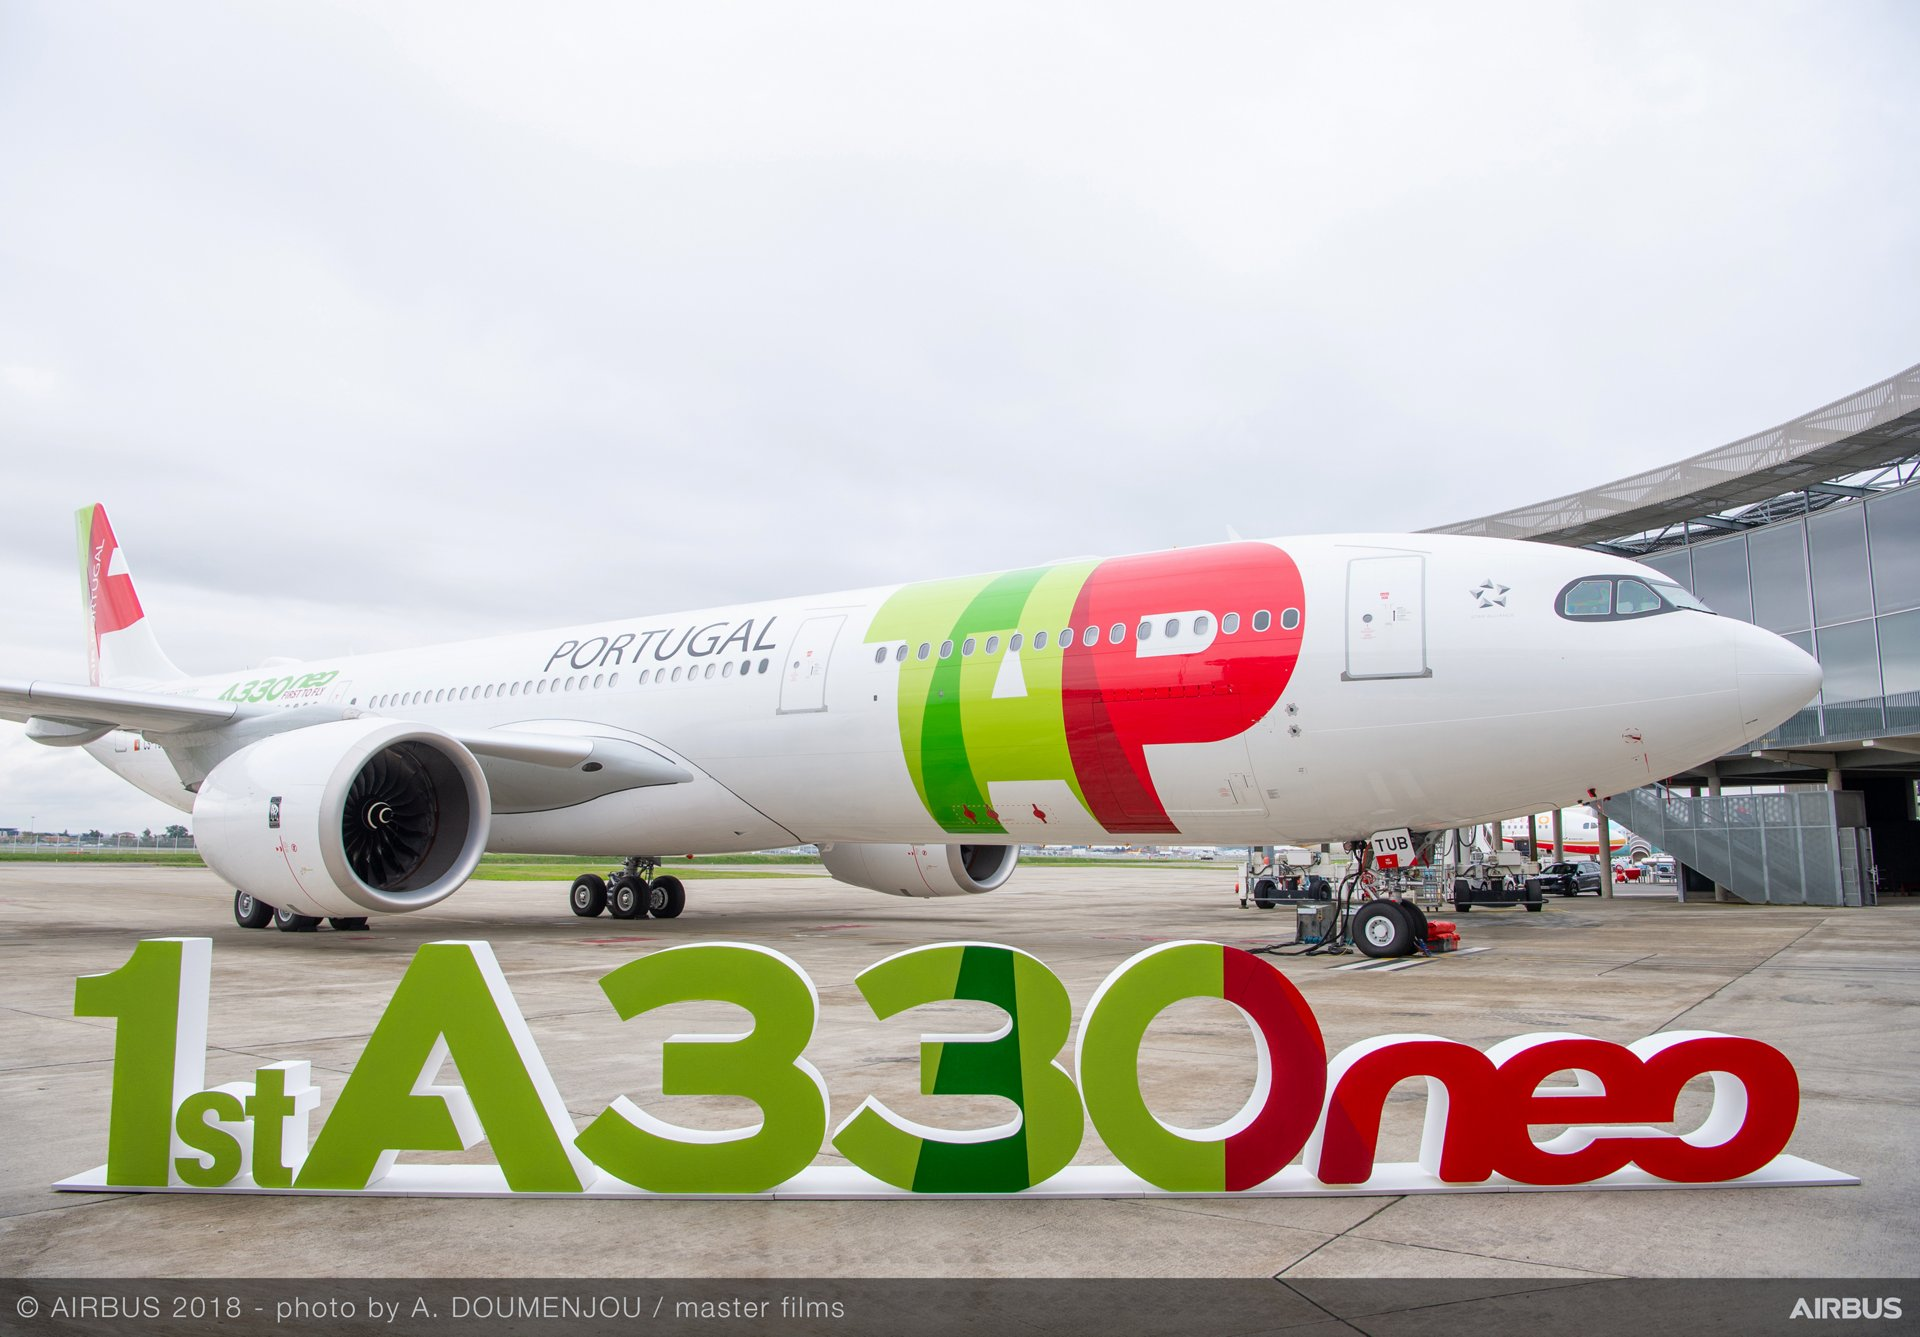 TAP Air Portugal is replacing almost all planes of its long-haul fleet